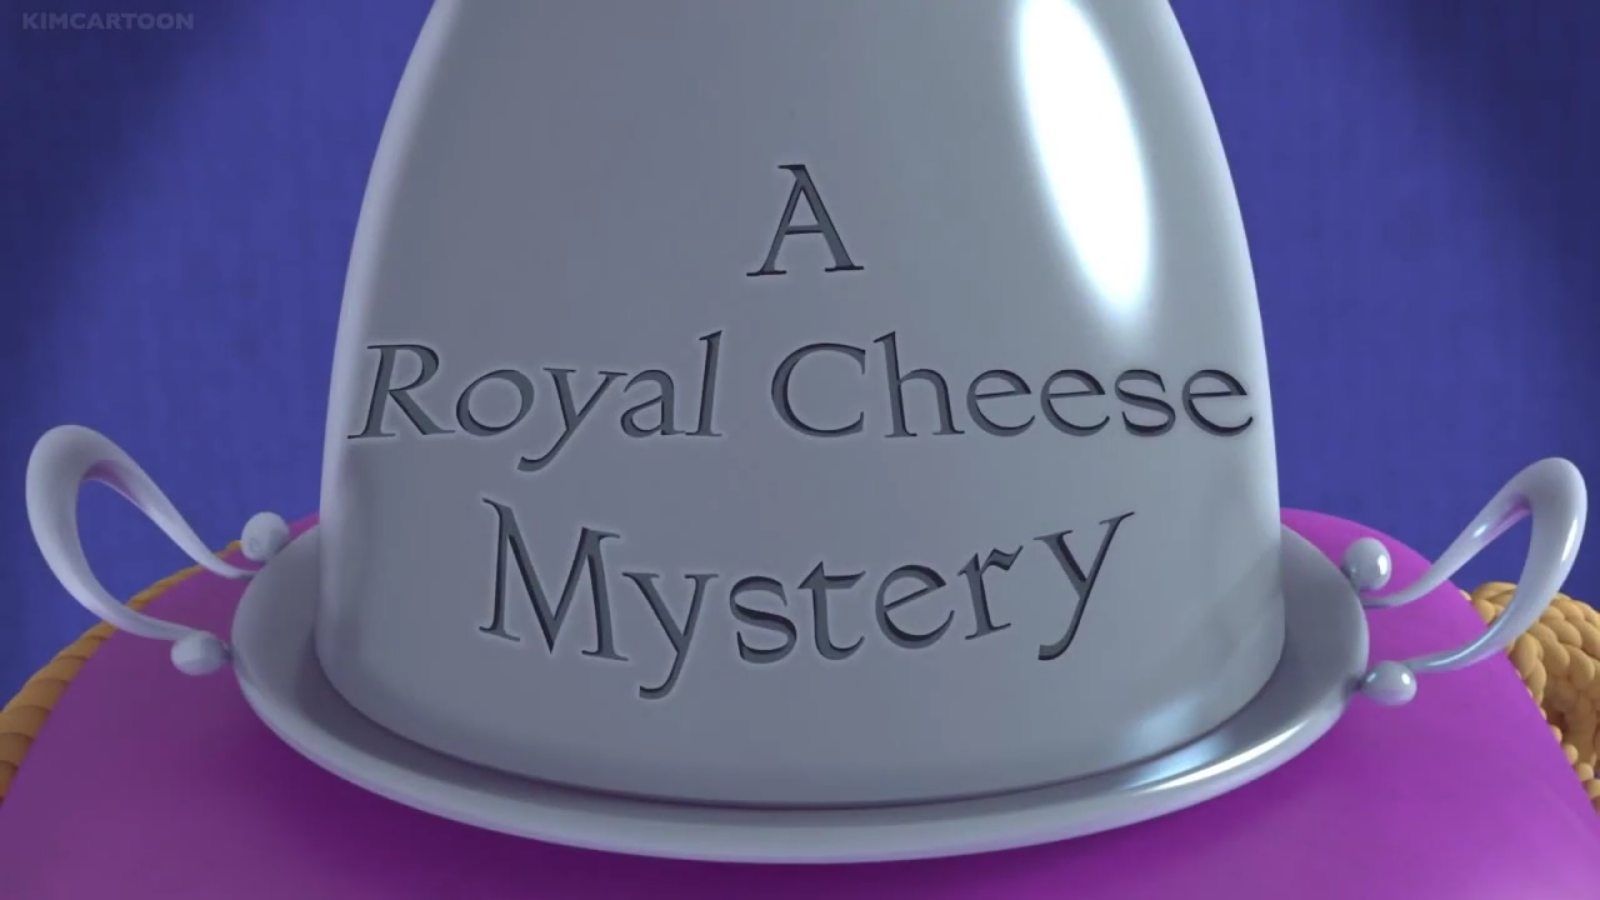 A Royal Cheese Mystery